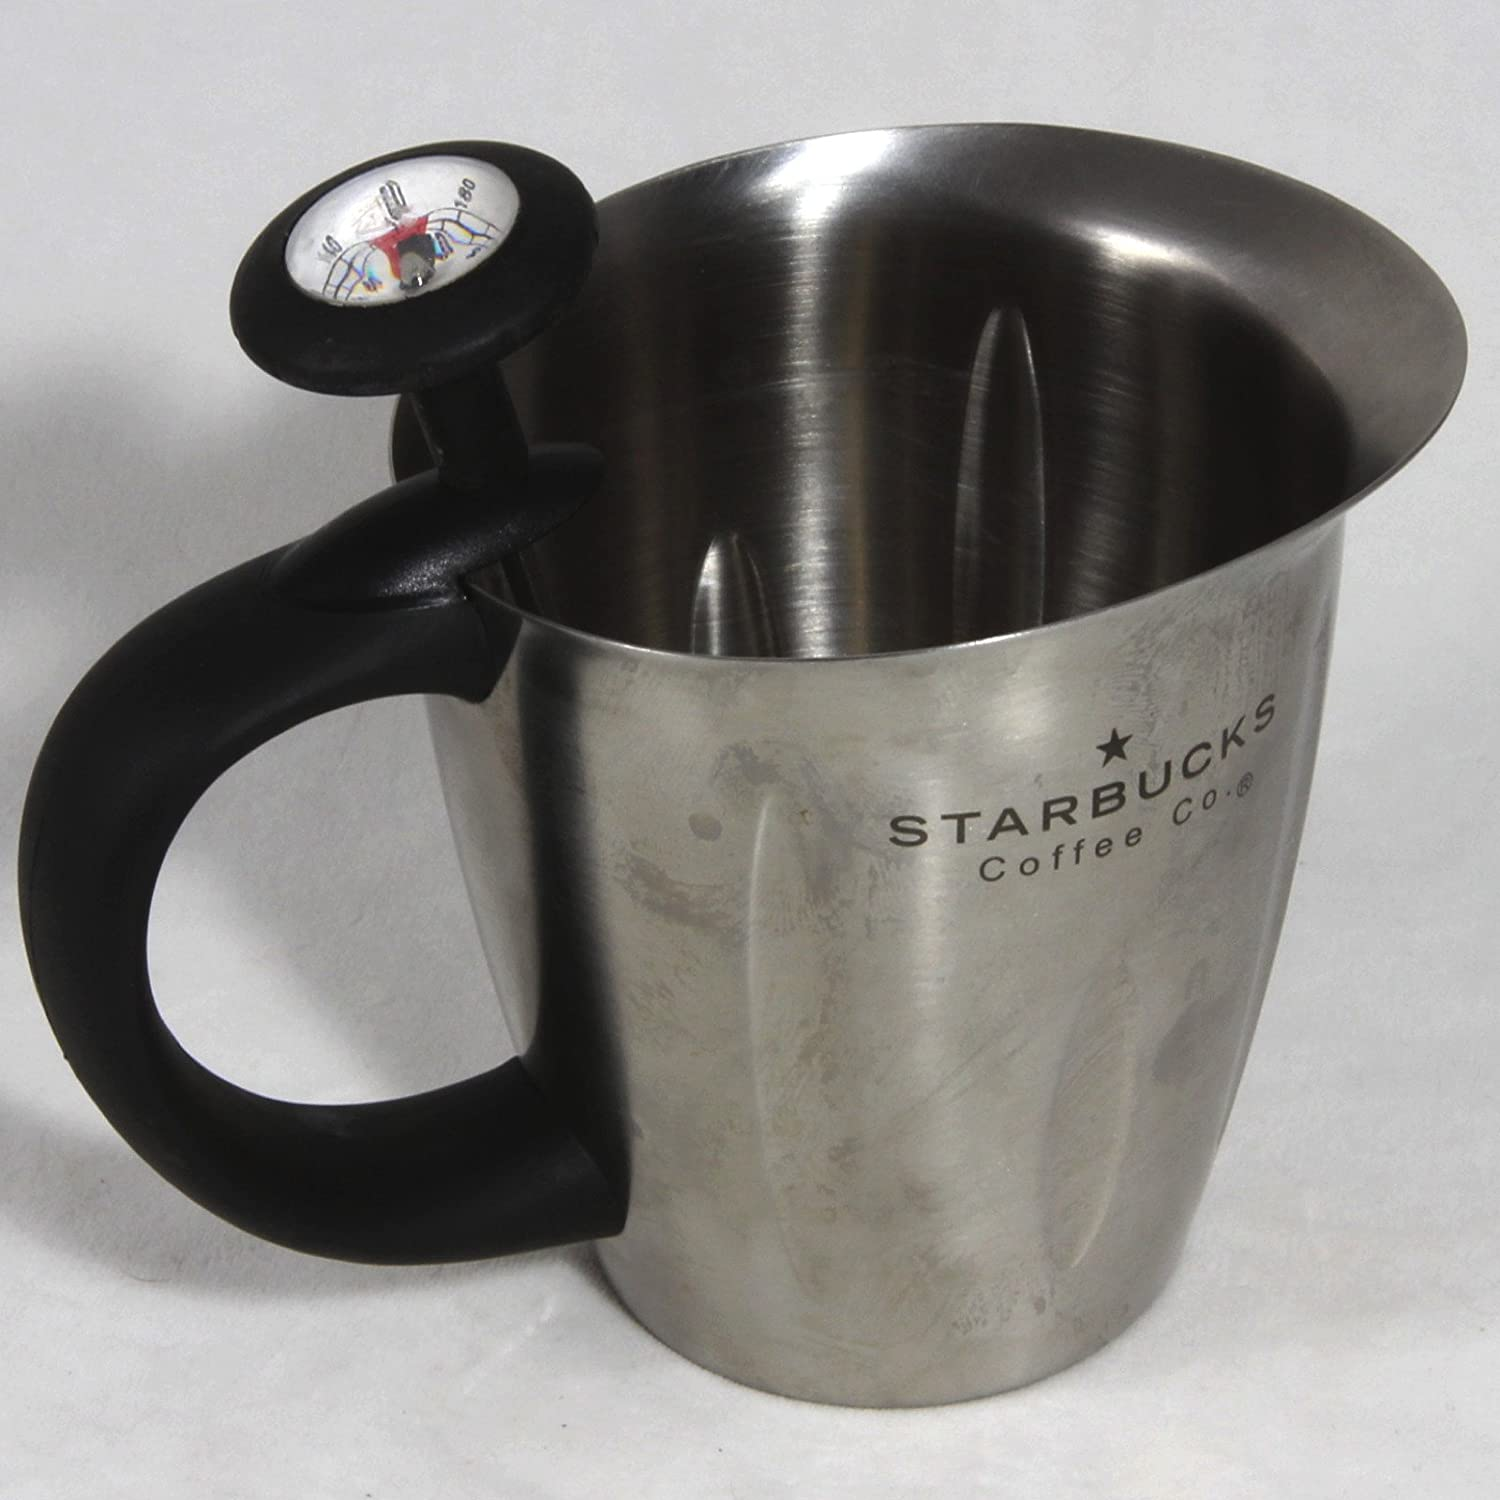 Classic Starbucks Coffee Stainless Steel Pitcher with Milk Challenge the Opening large release sale lowest price Froth